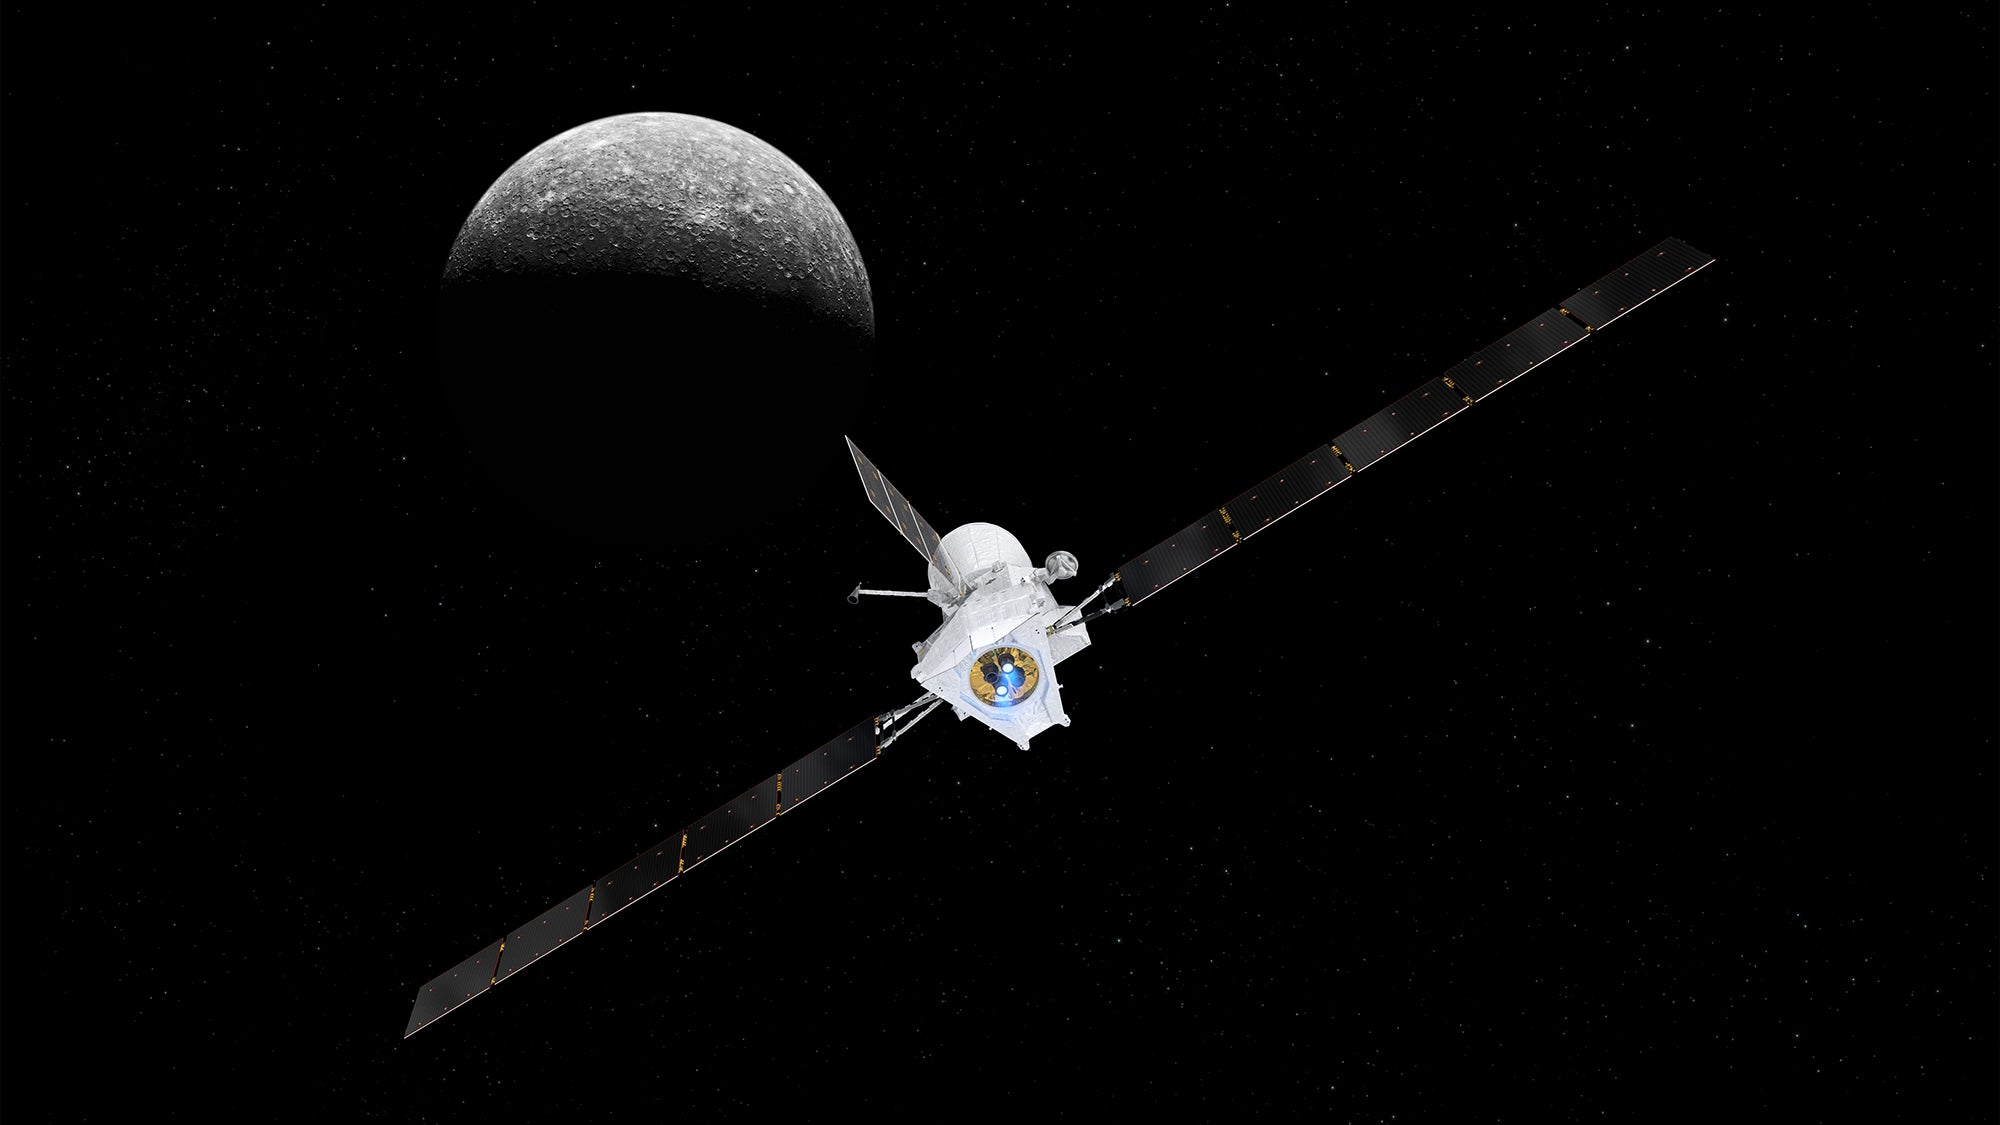 Launching Today: A Mission To The Best Planet (Mercury)